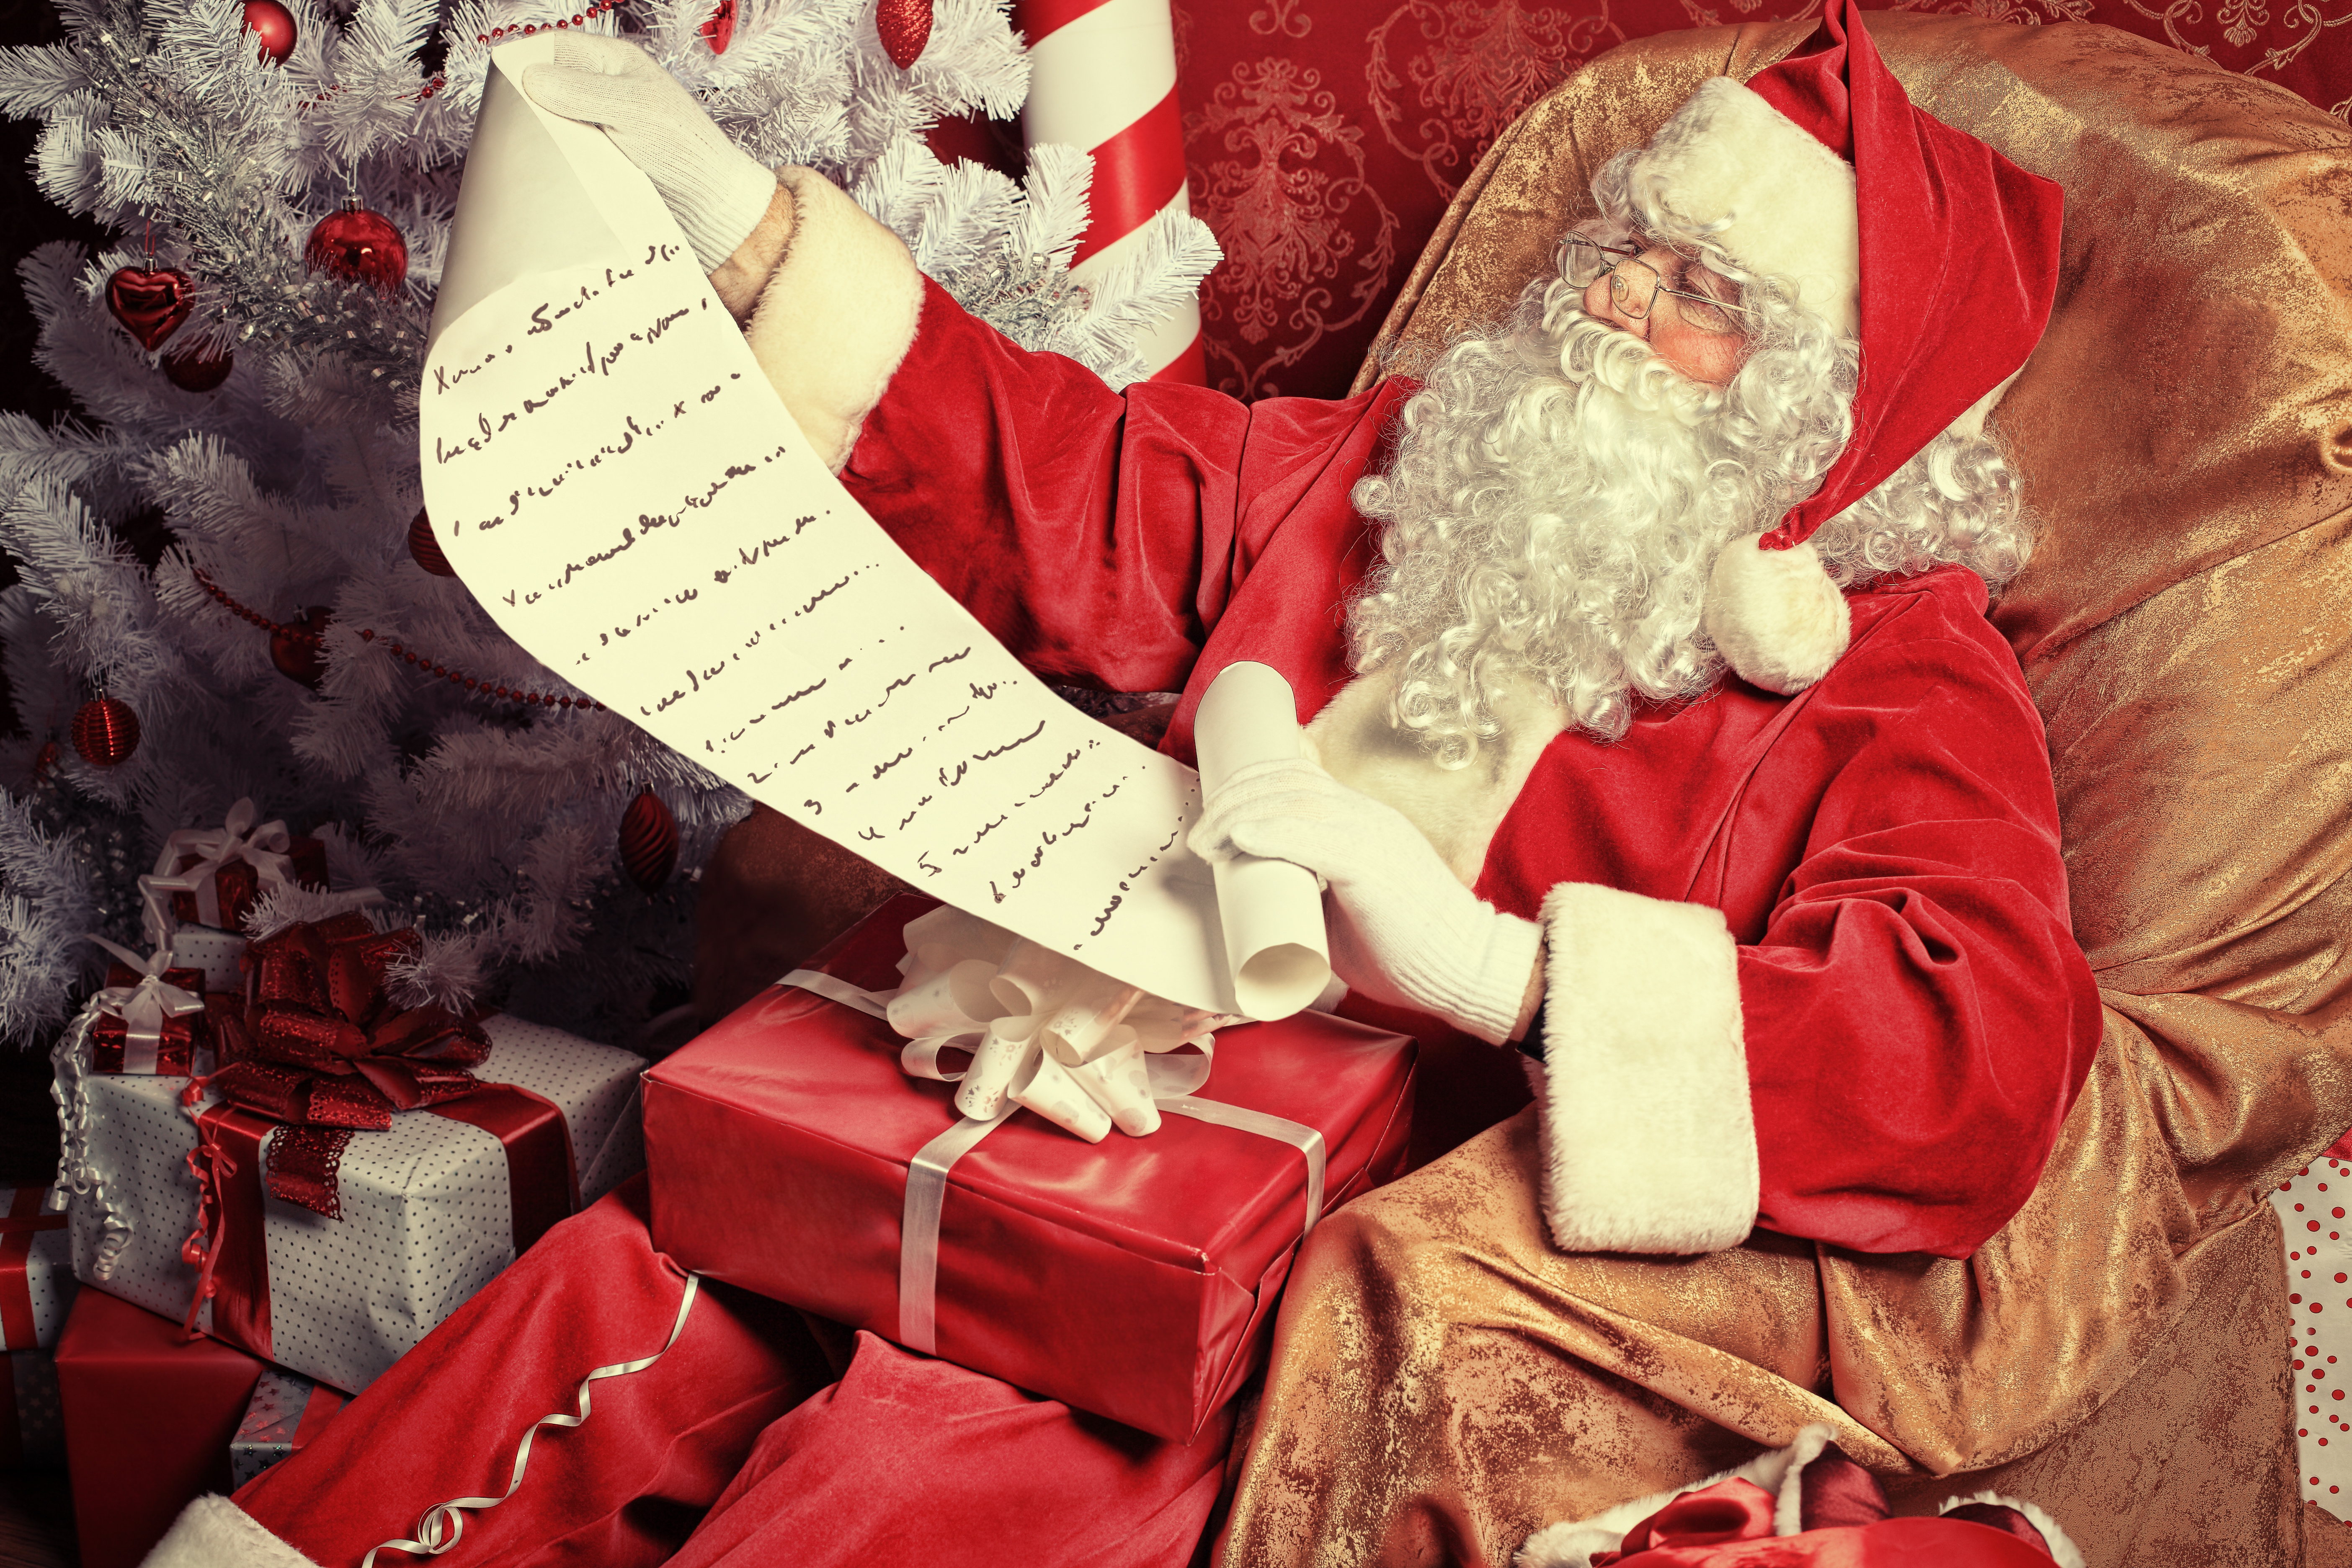 Santa Claus looks at a very long wish list. He is surrounded by presents and a Christmas tree.